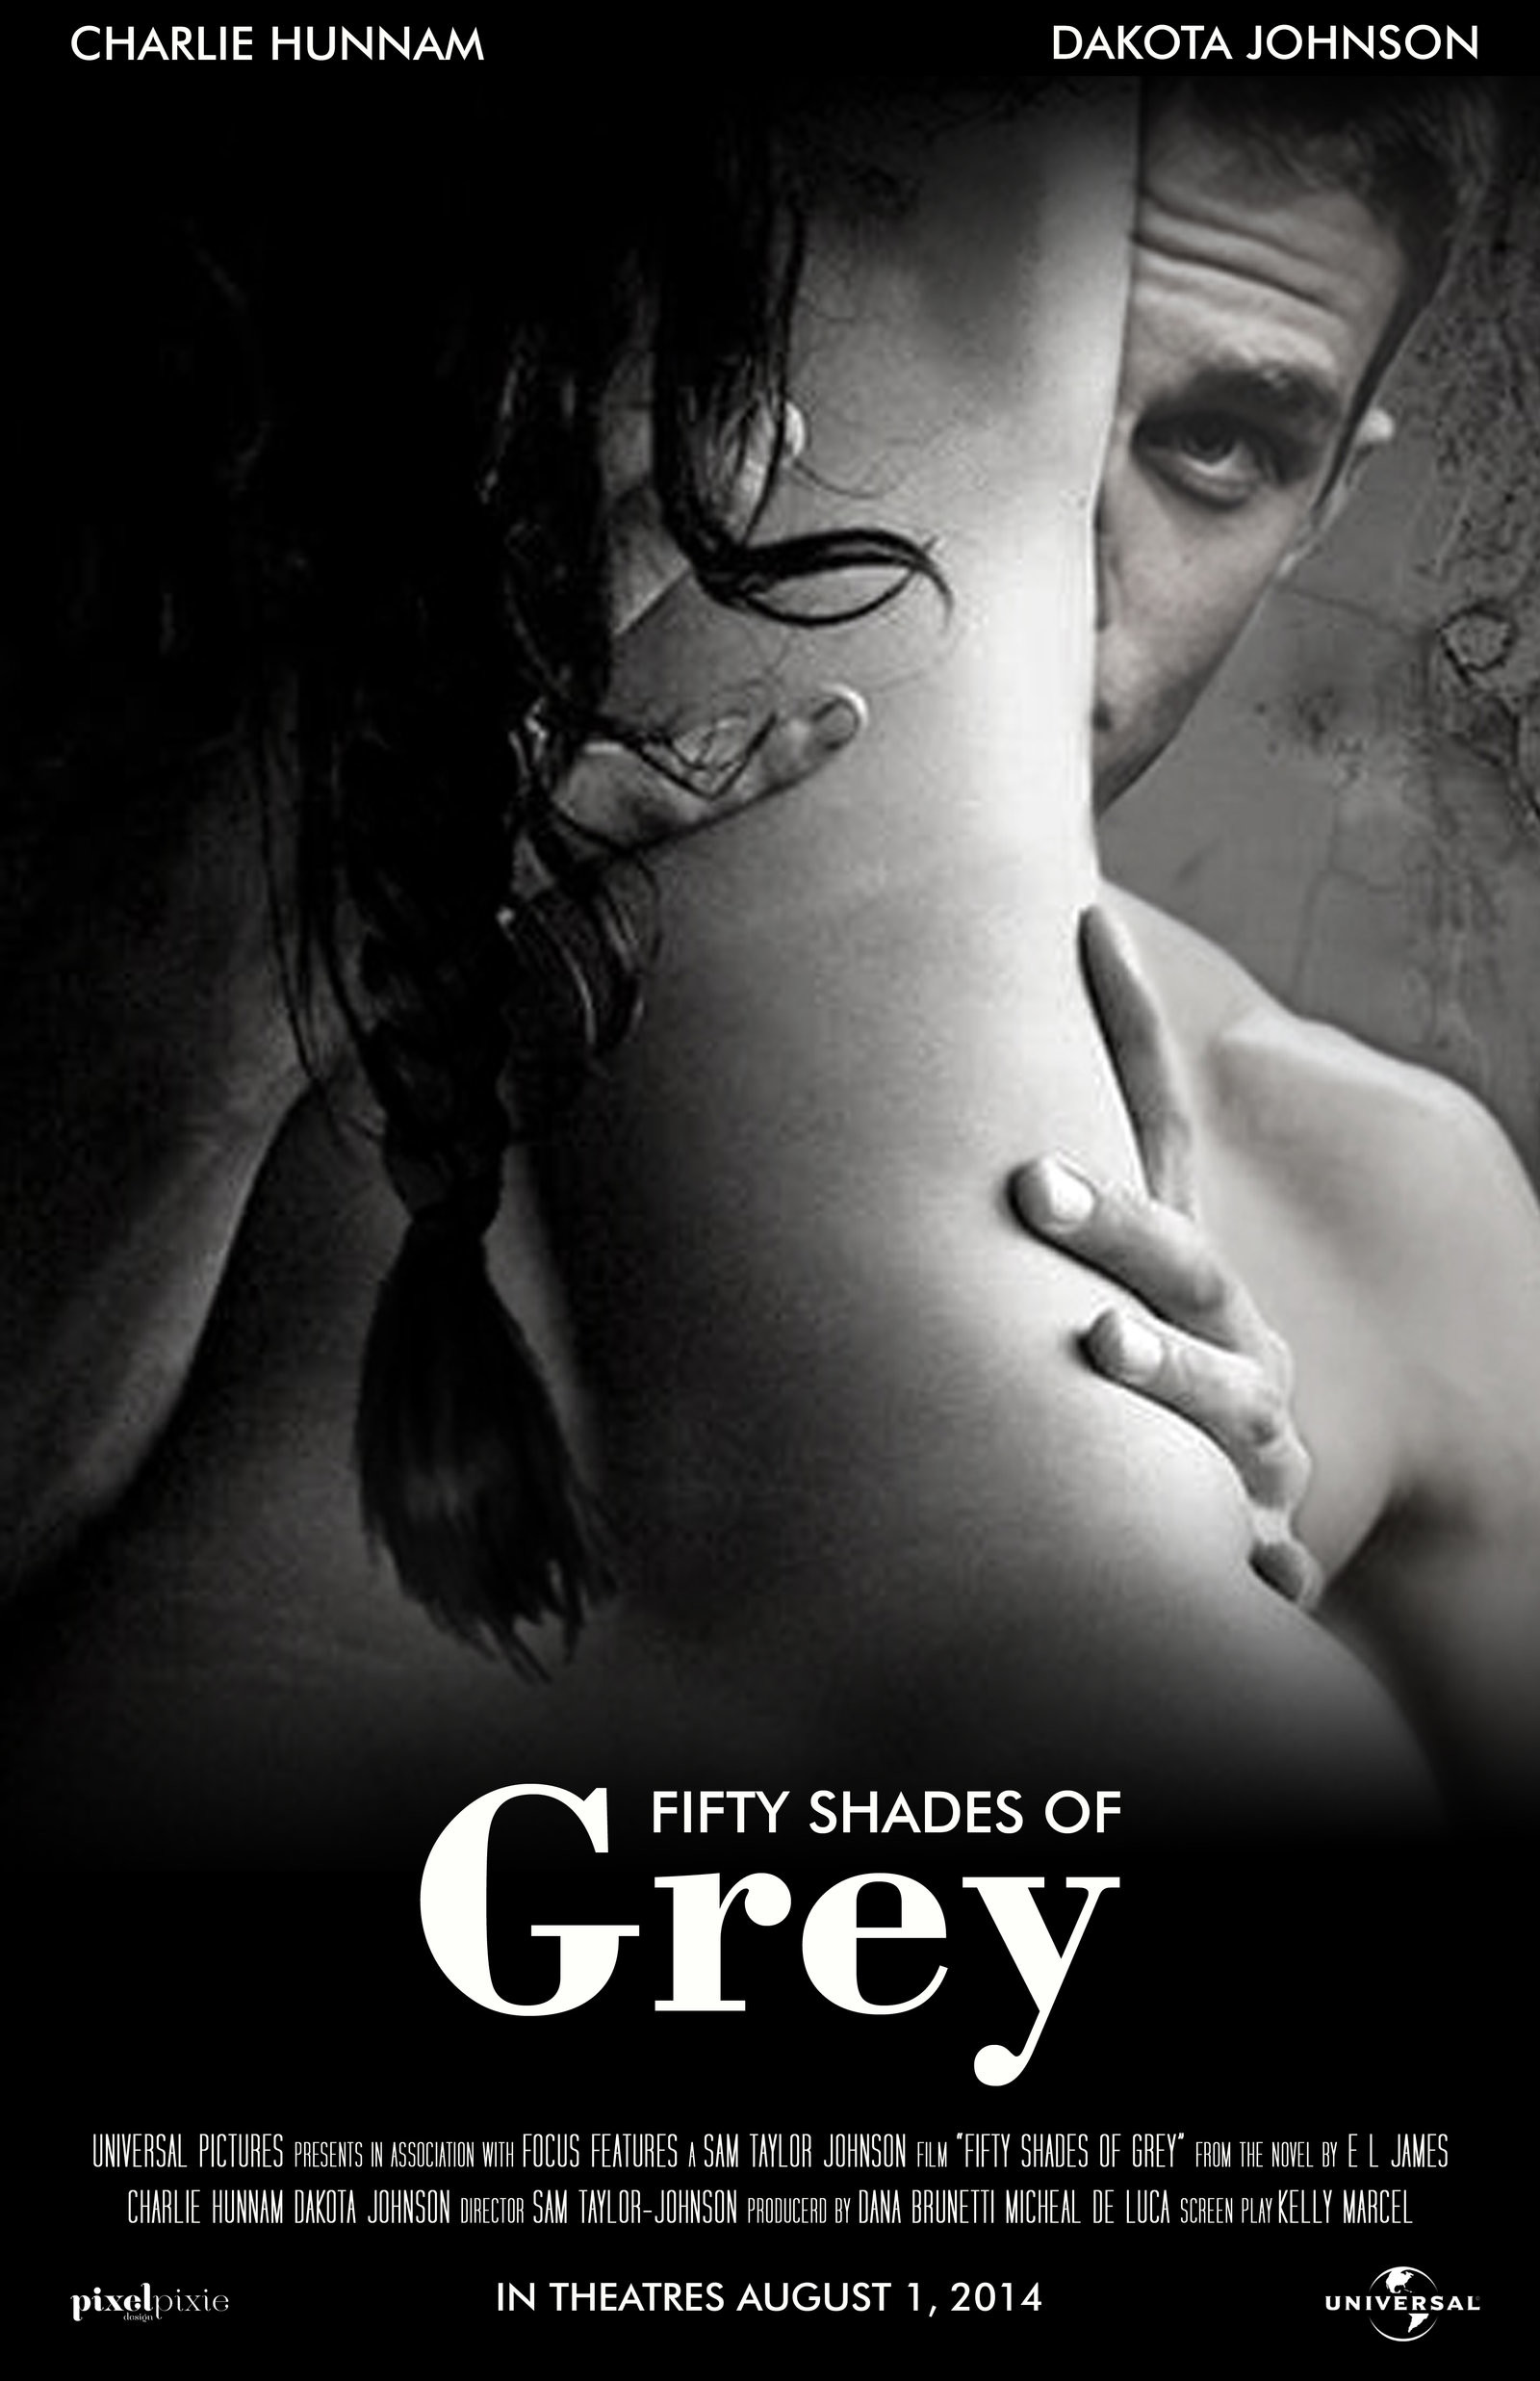 … Fifty Shades of Grey …